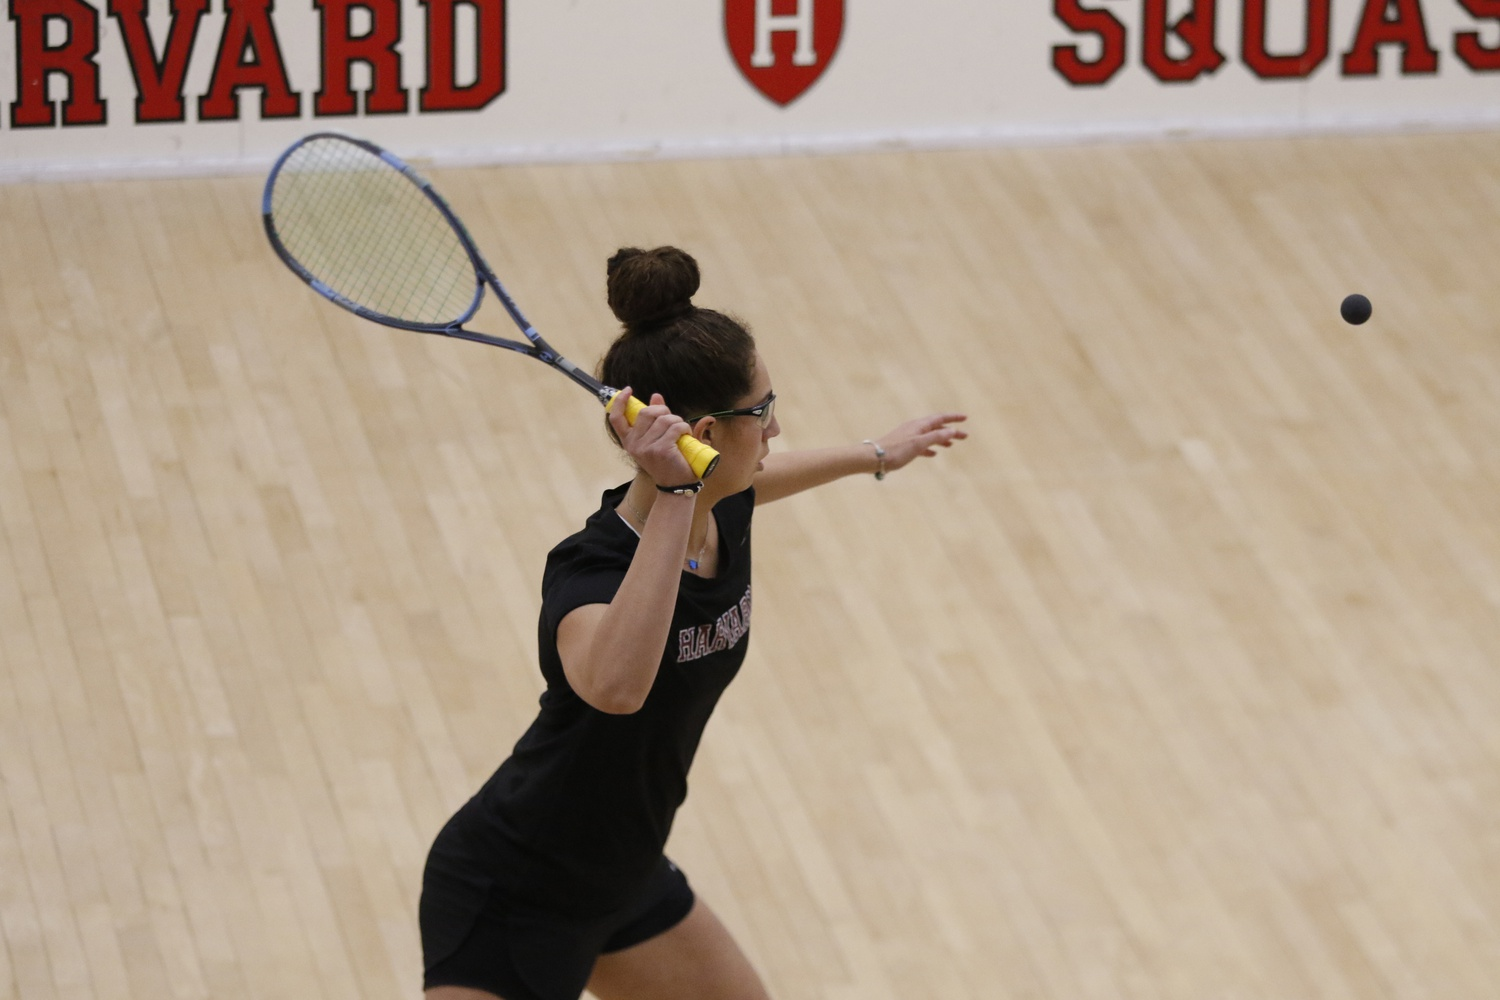 Harvard women's squash captured its fifth consecutive Howe Cup this season.